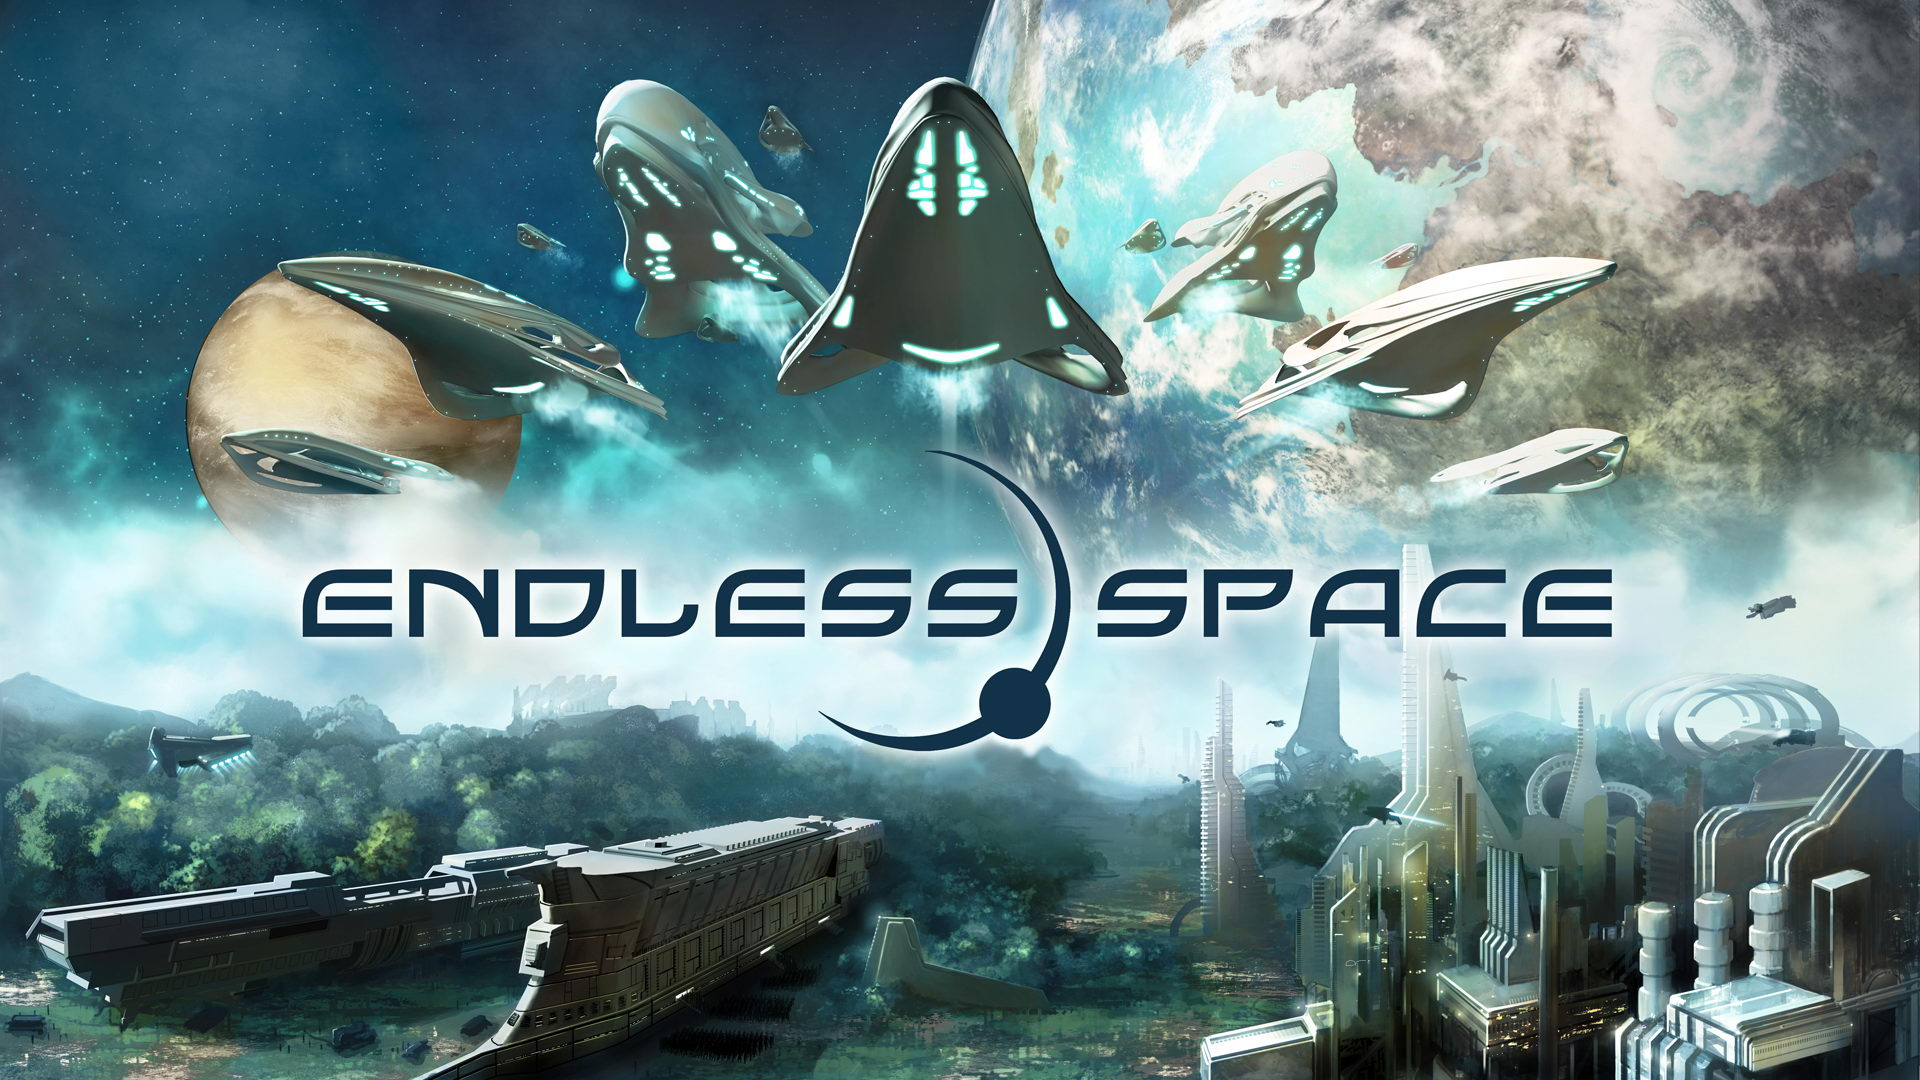 Endless Space Gold + DLC (RU/CIS activation; Steam ROW)